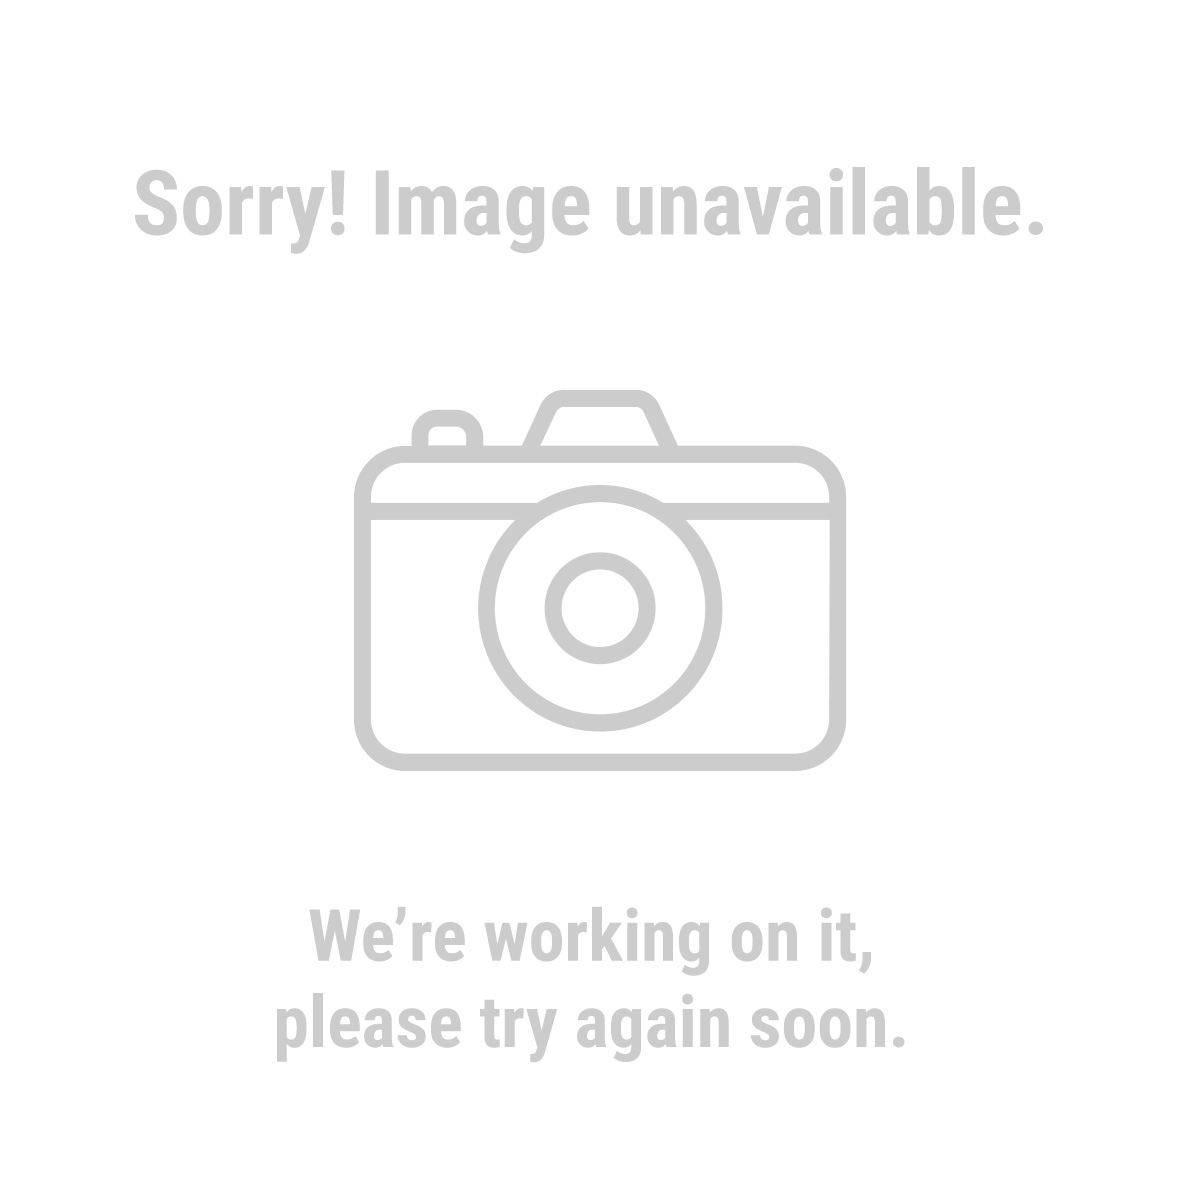 Inside Track Club 400 2-Year Inside Track Club Membership RENEWAL